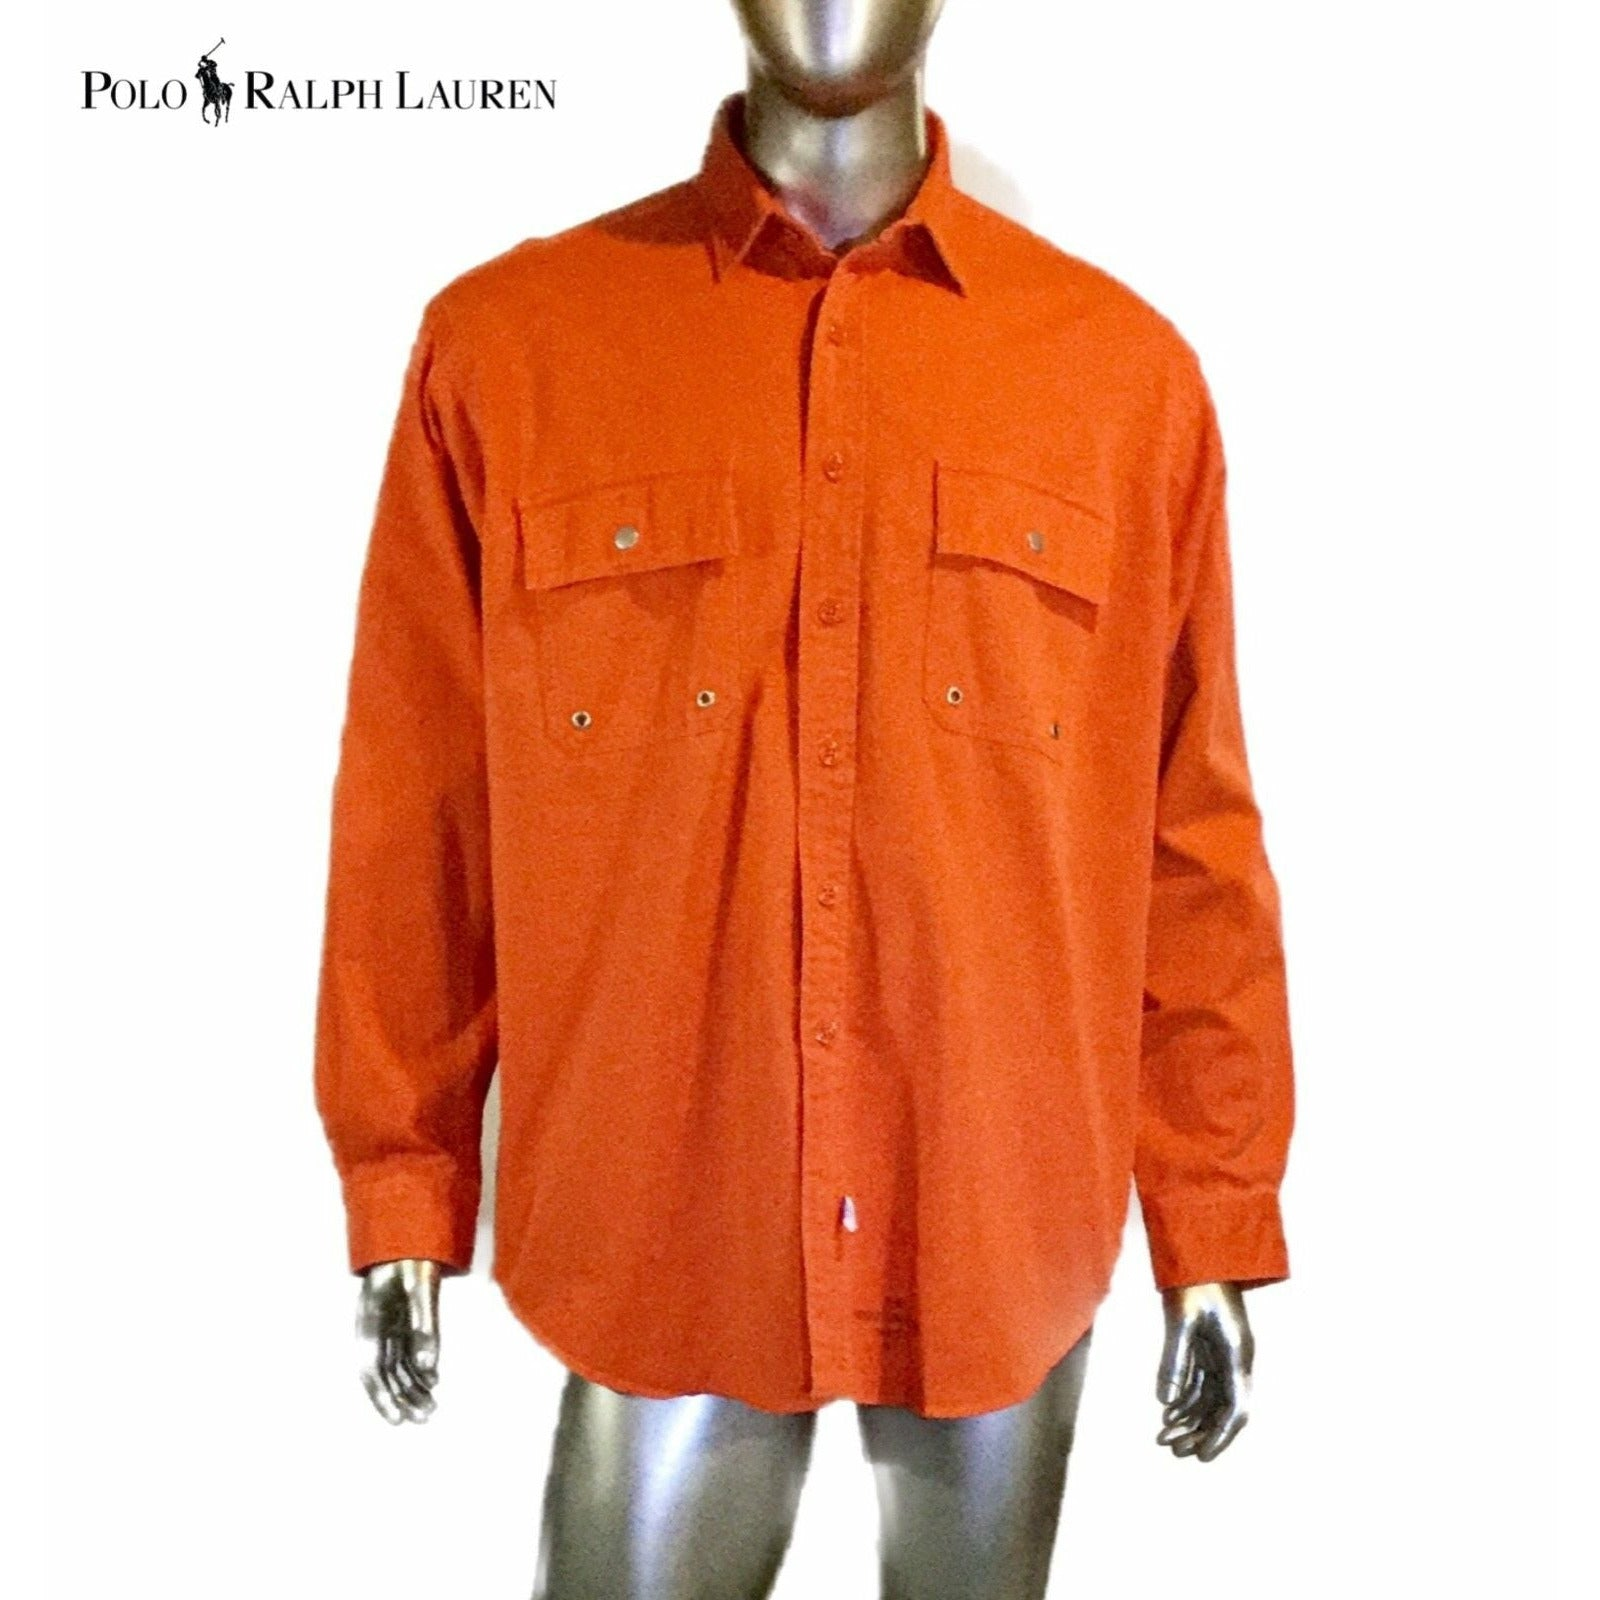 Vintage 90s Polo By Ralph Lauren Mens Orange,Usa Made Button-Front Shirt Size XL